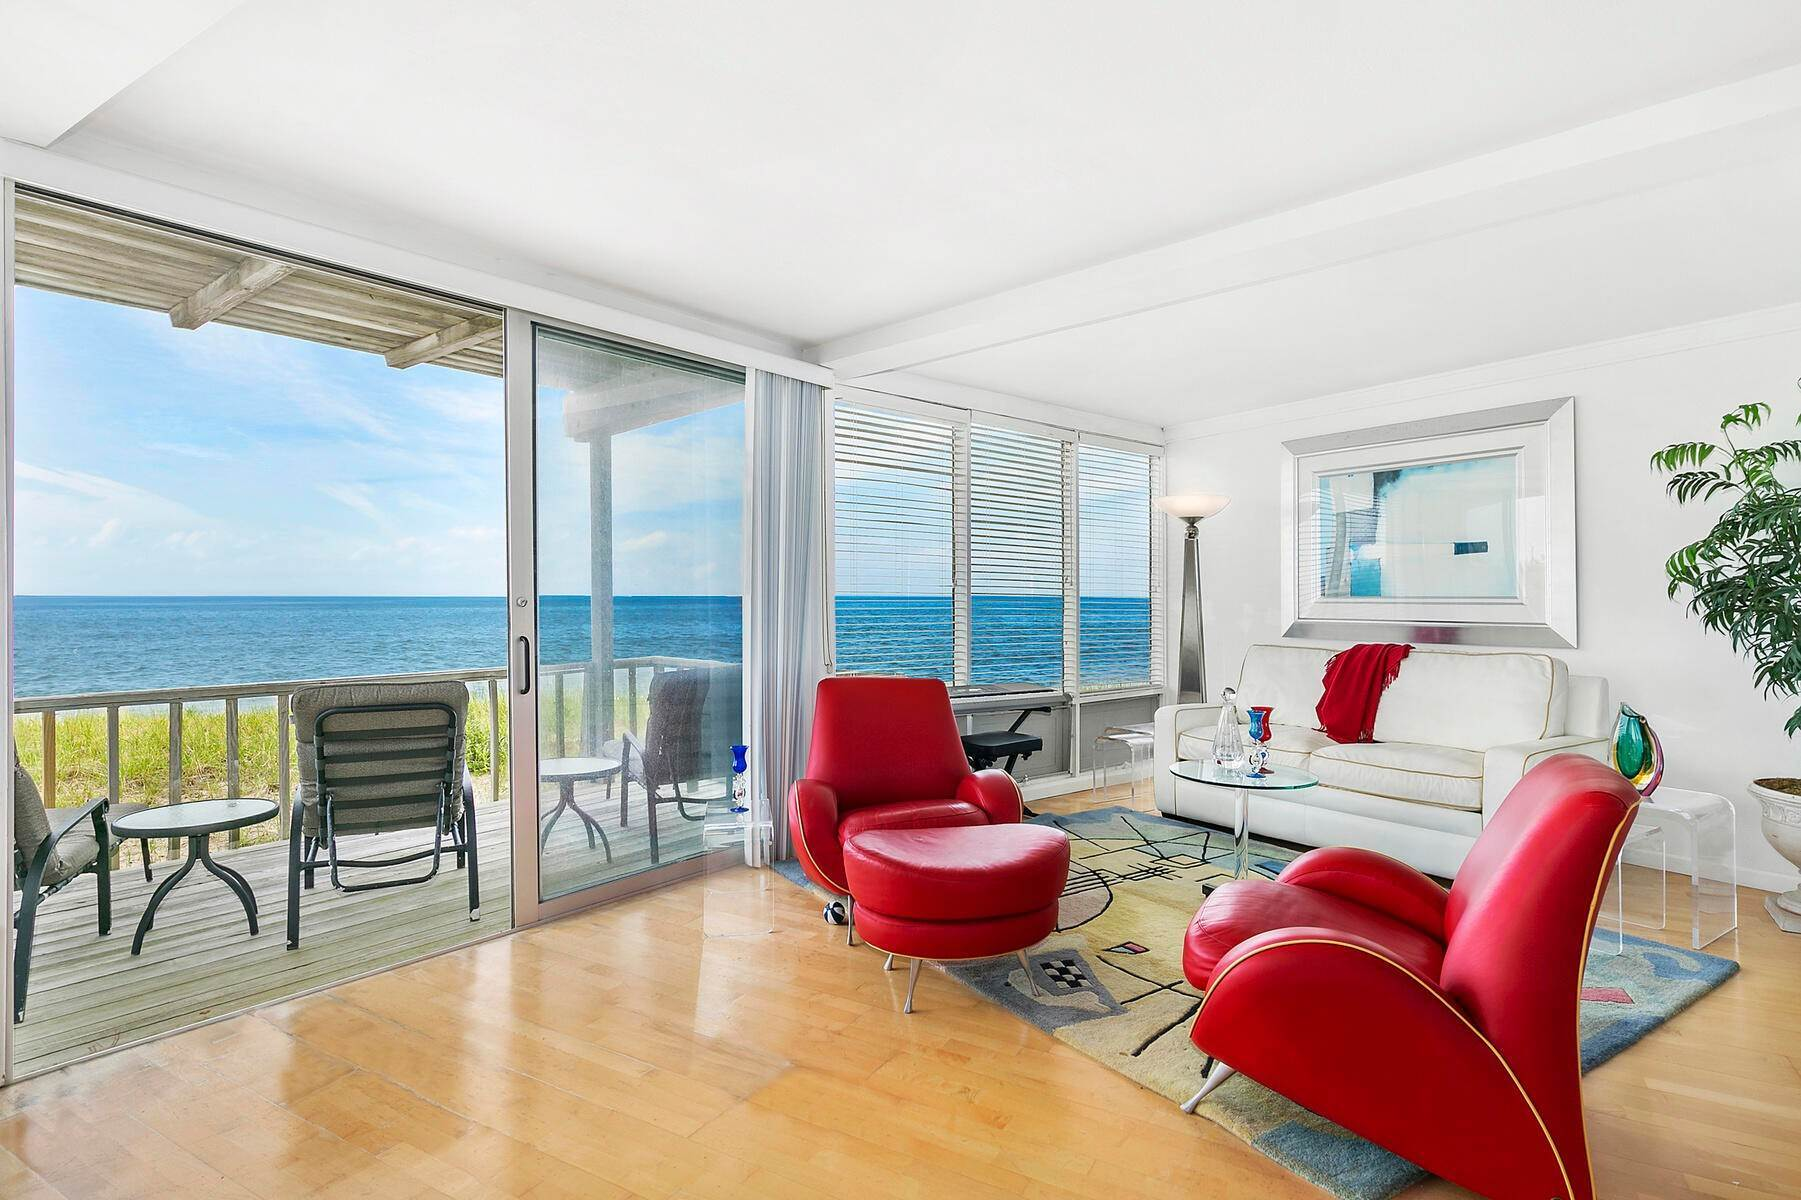 Multi-Family Homes for Sale at Rarely Available Oceanfront Double Unit 101 Dune Road, Unit 3 & 4, East Quogue, NY 11942